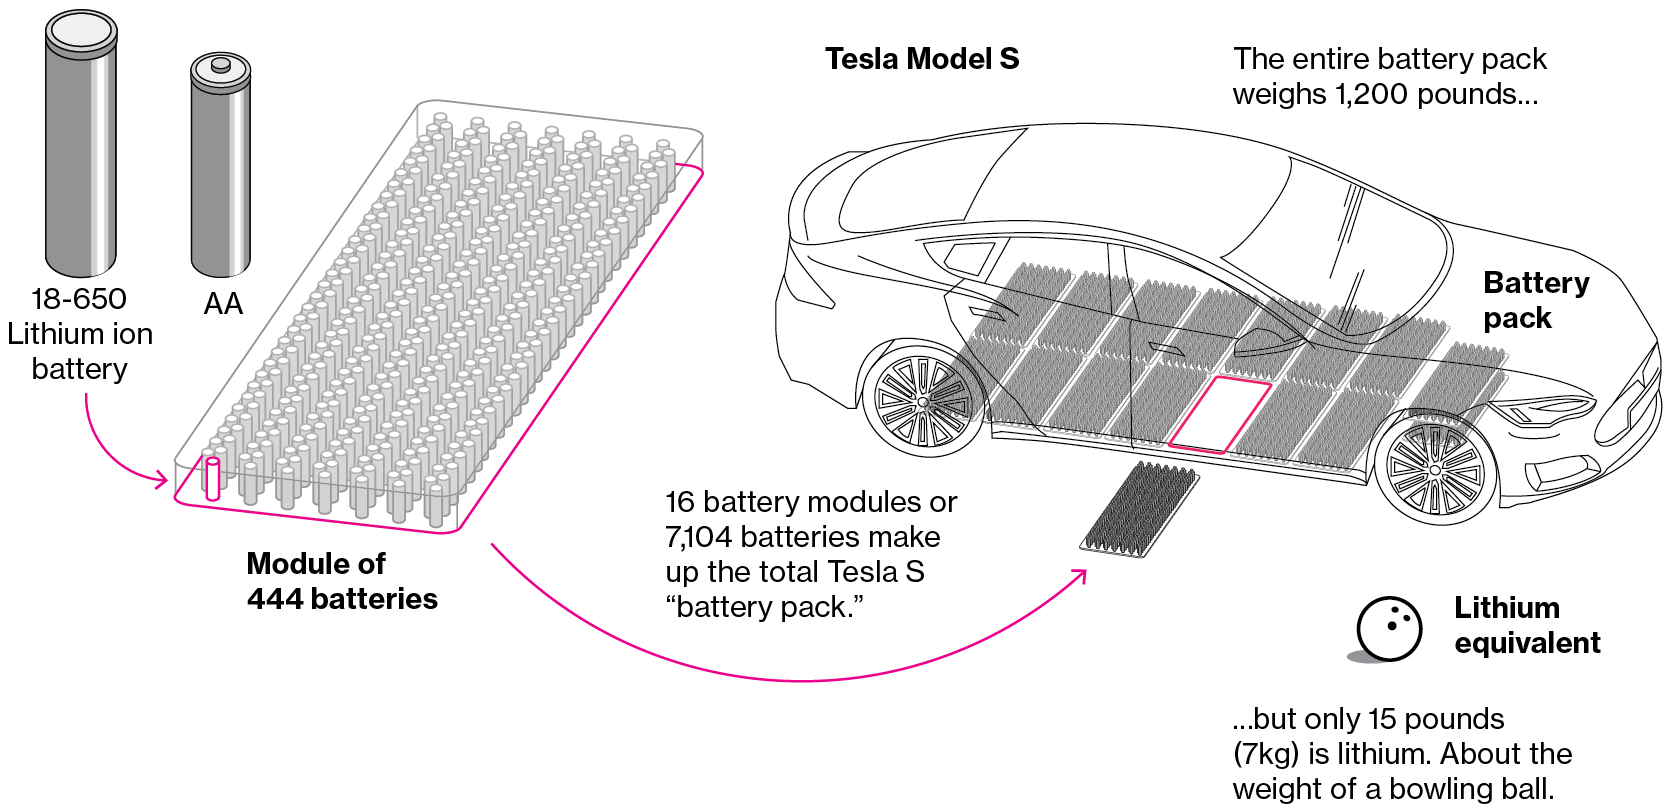 How much does a new tesla battery pack cost